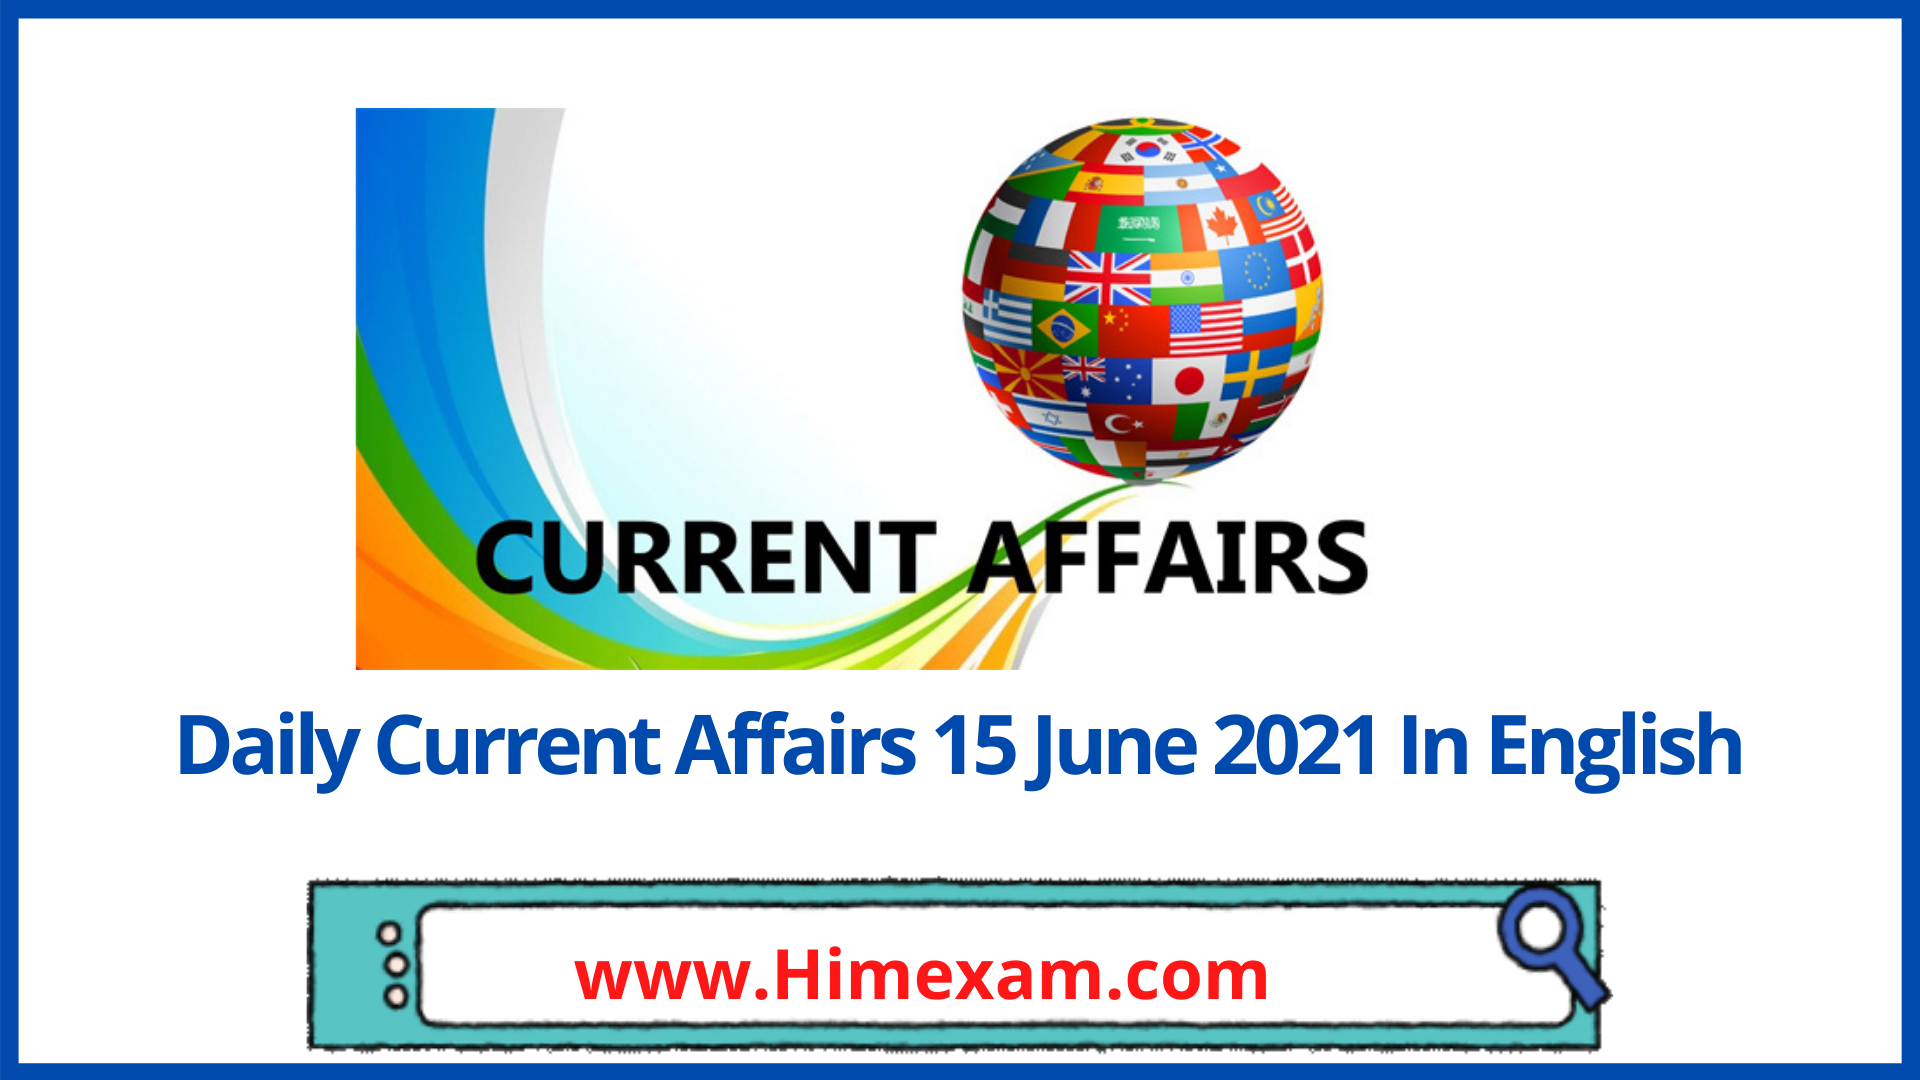 Daily Current Affairs 15 June 2021 In English